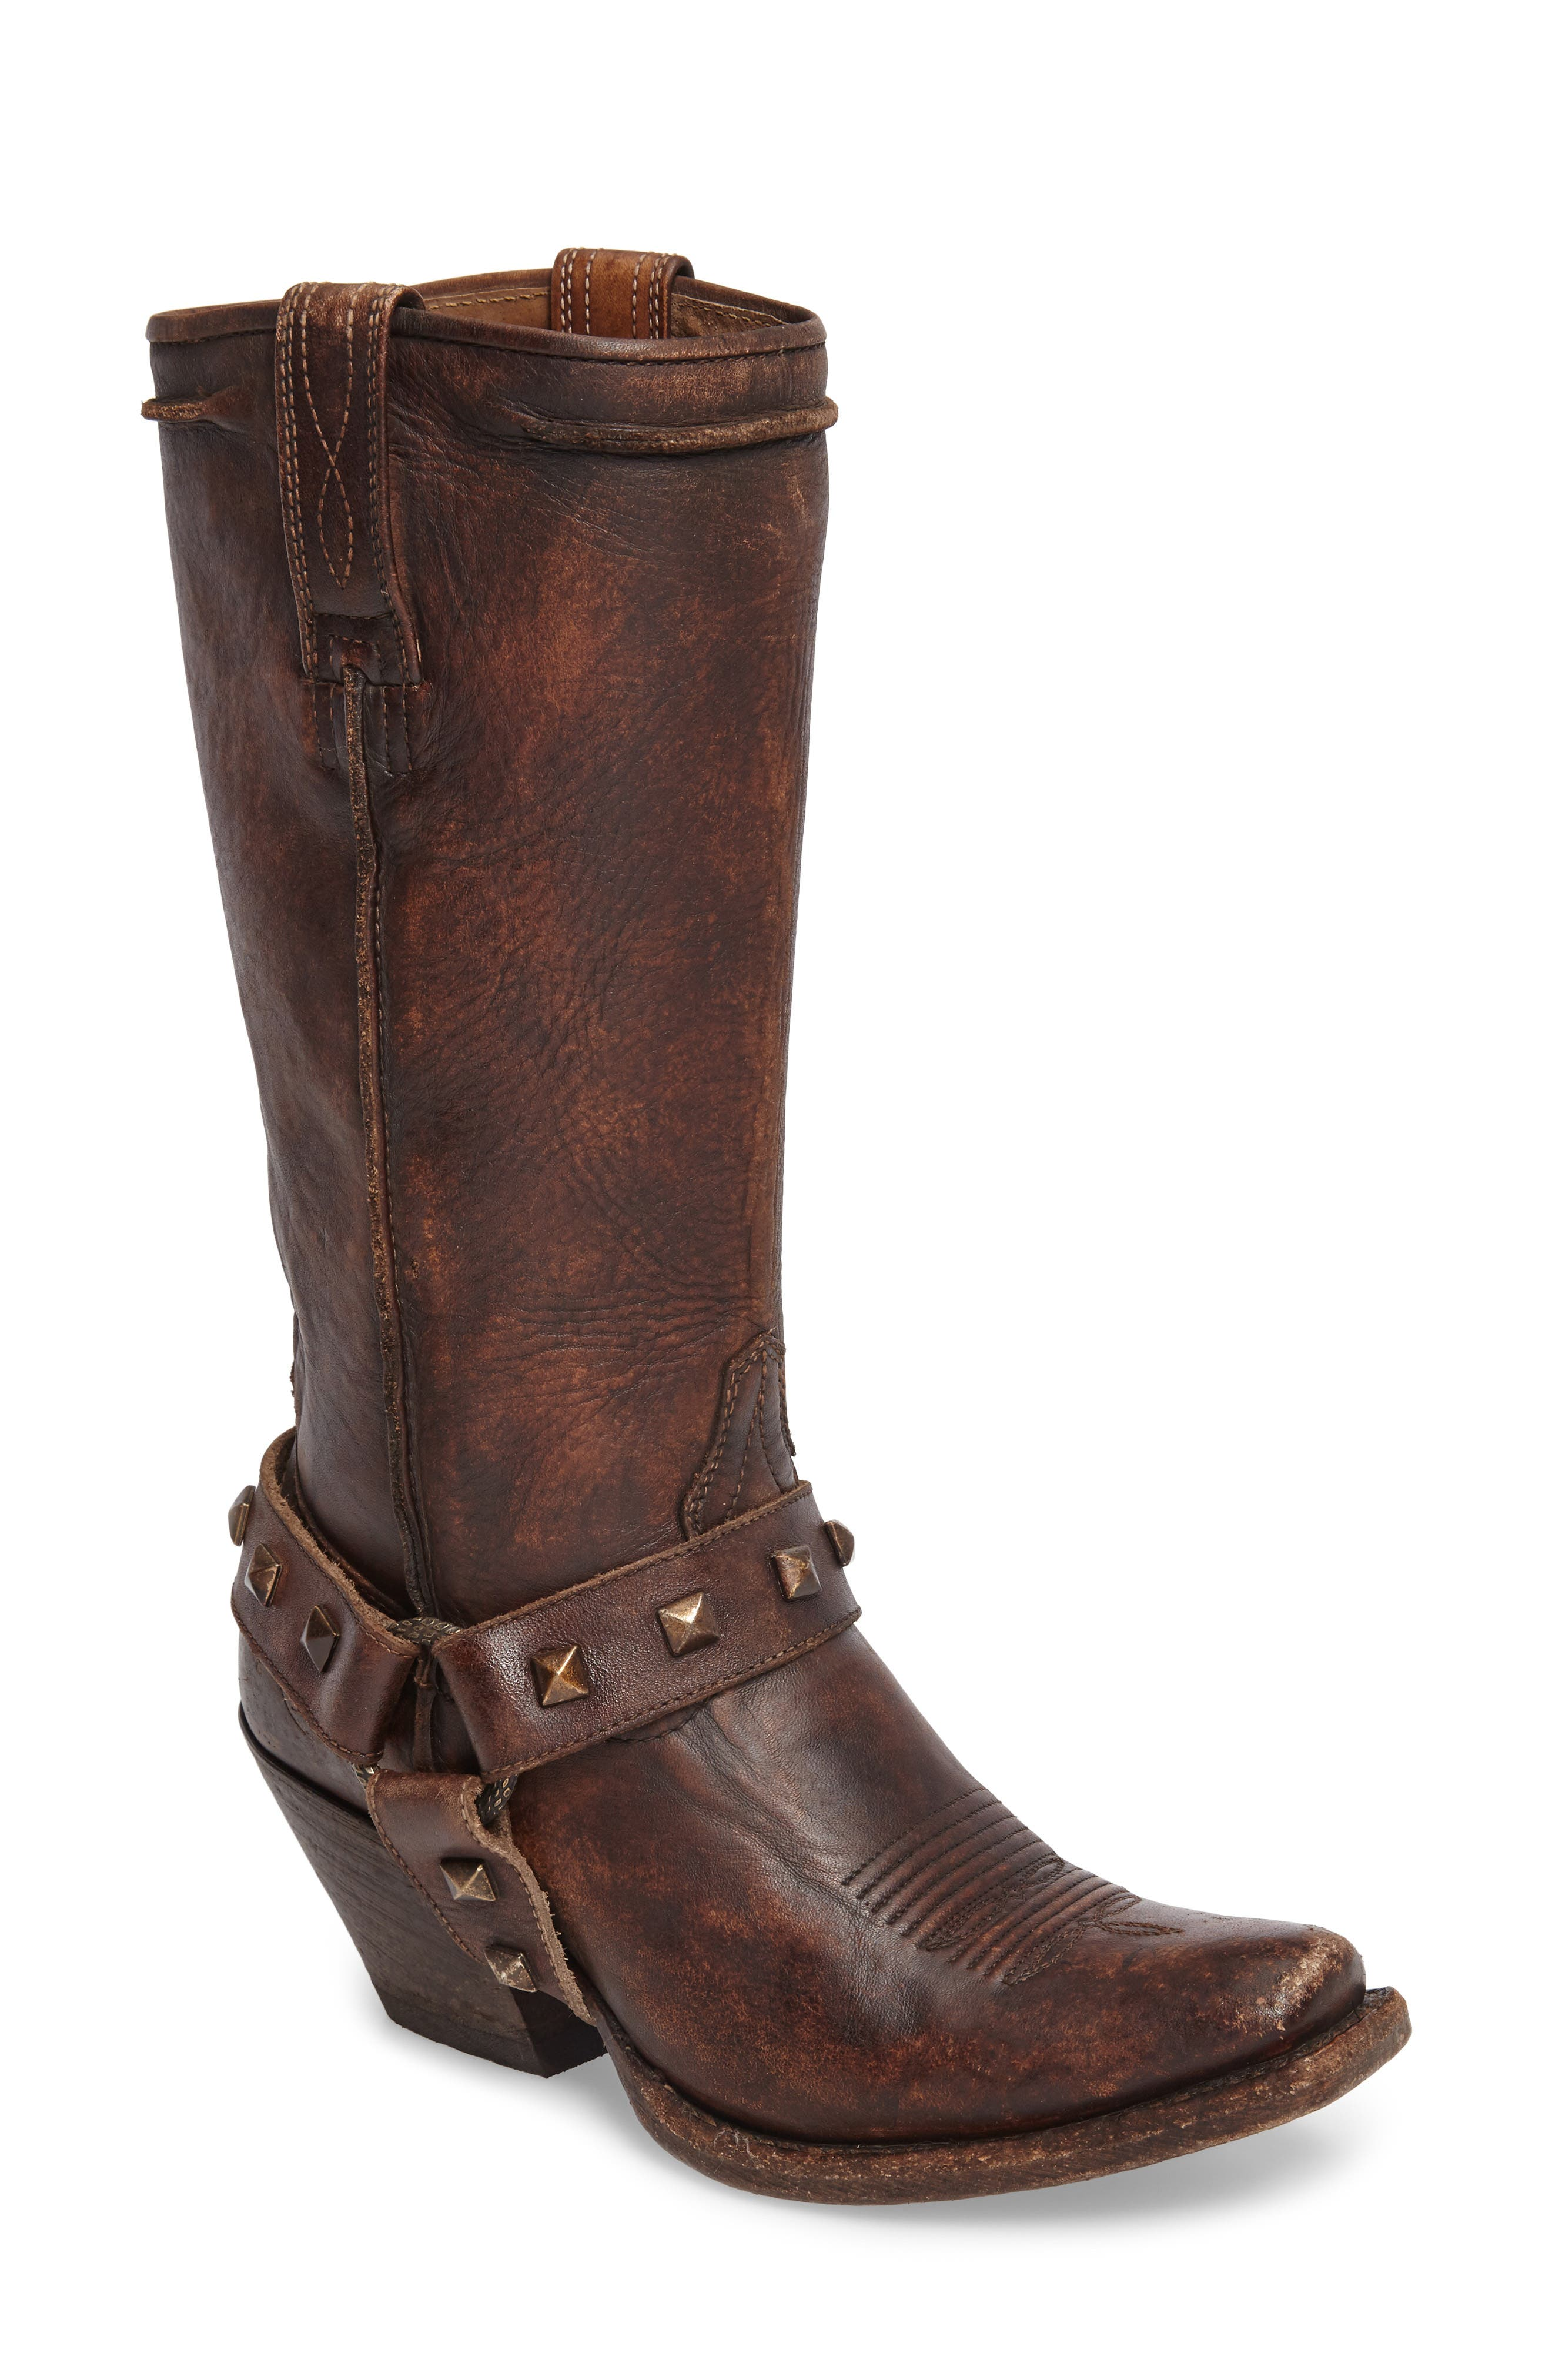 Rowan Western Harness Boot,                             Main thumbnail 1, color,                             NATURAL NORWOOD LEATHER